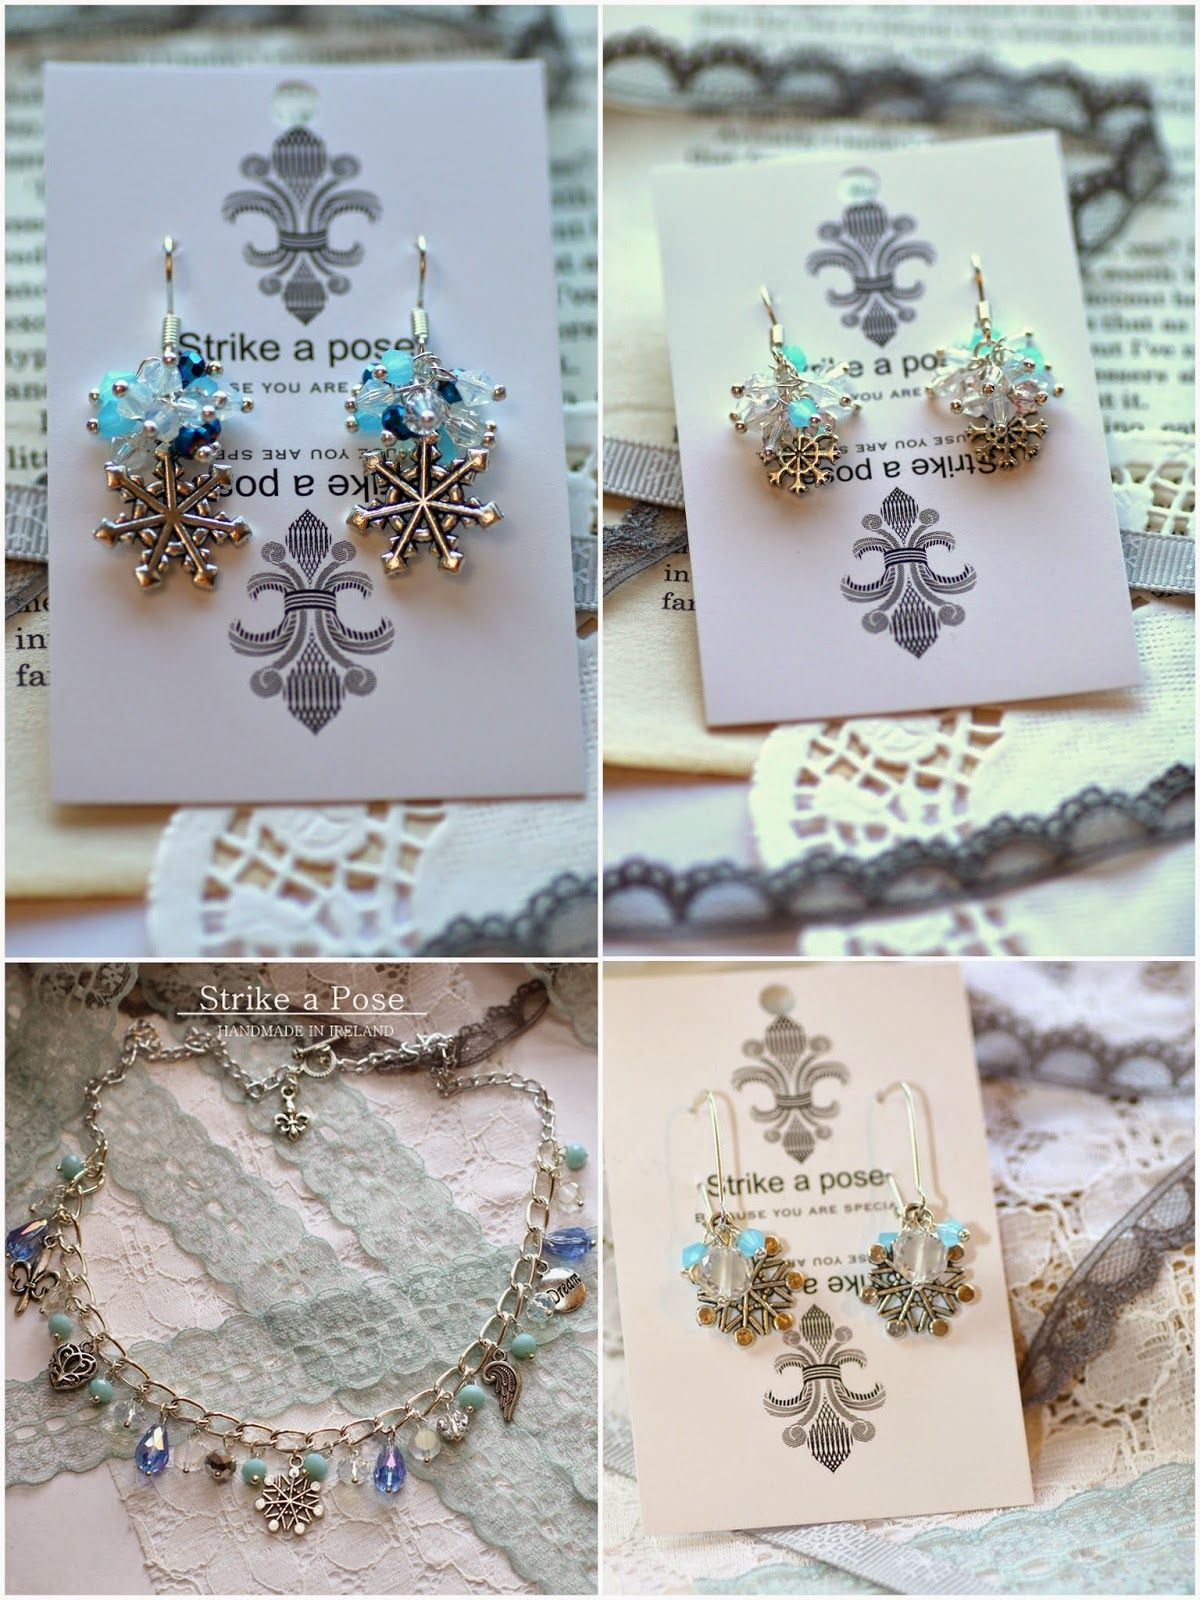 Holiday glitz snowflake earrings and necklace